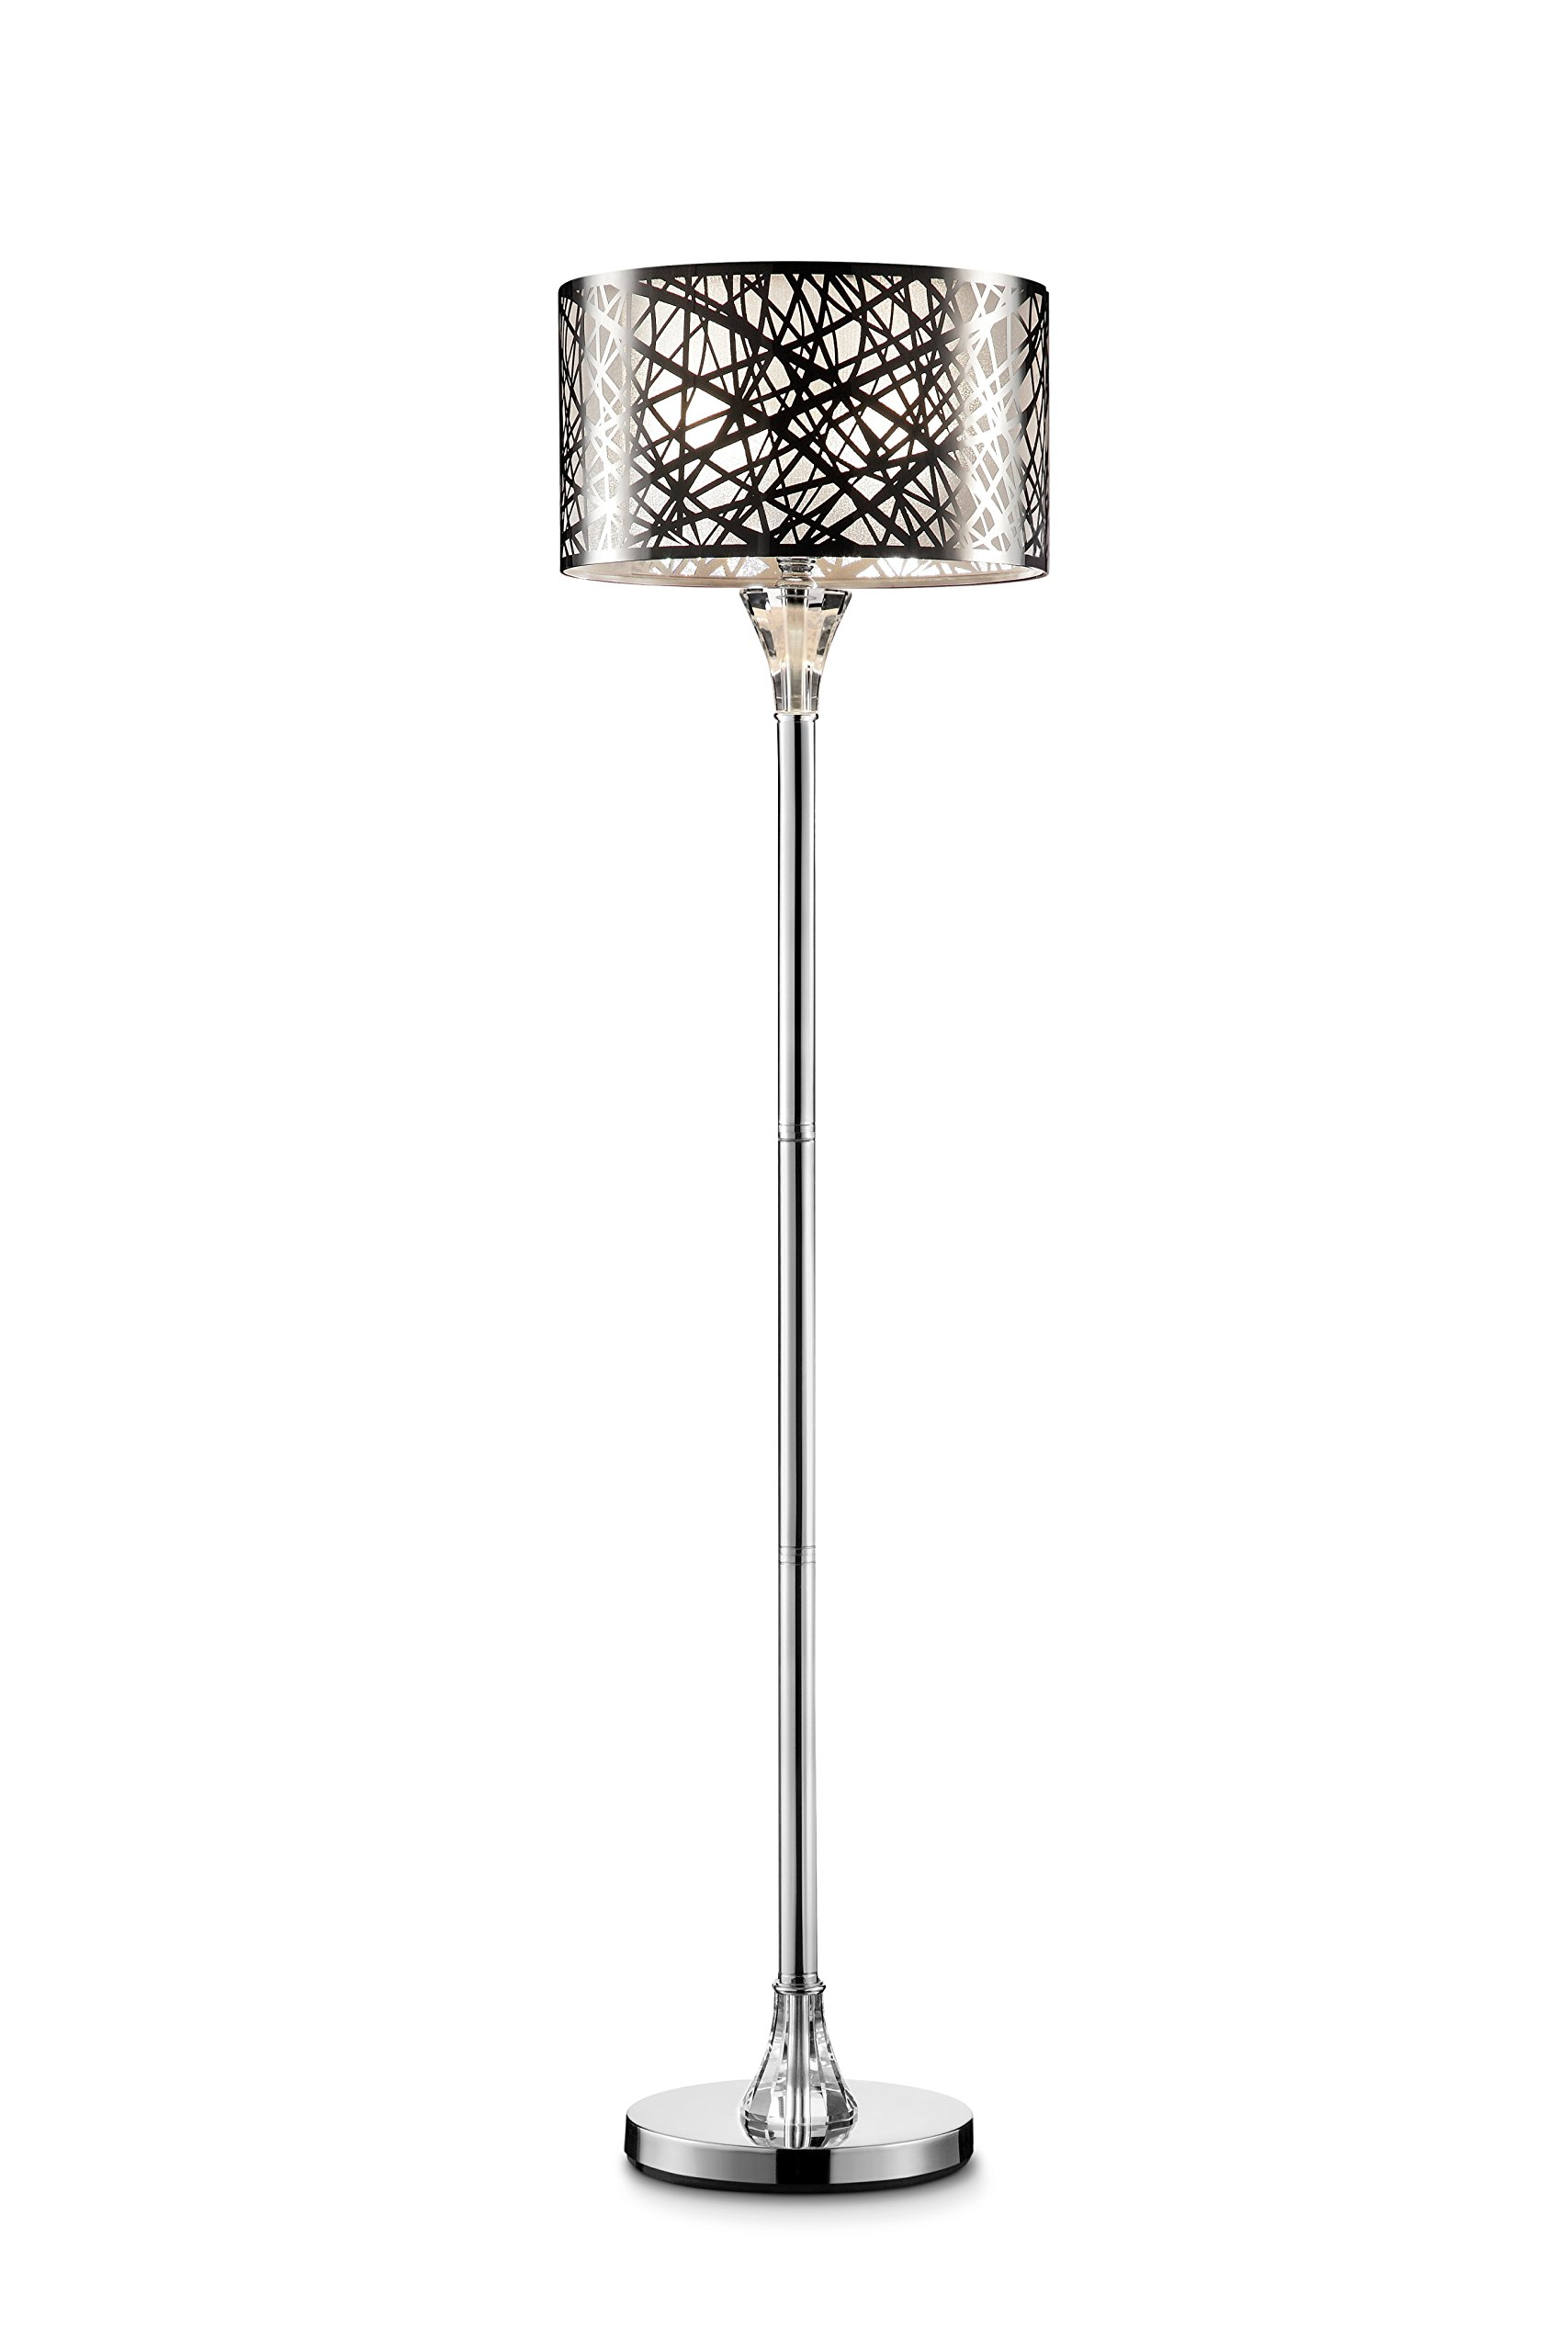 """Ore International K-5148F Array 61"""" H Crystal Floor Lamp - The array Crystal floor lamp is intended as a statement piece for interiors as well as a functional light source Modern, contemporary and sleek design that perfectly blends into a living room or a bedroom, even for your office desk UL listed for product safety. Base finish: Chrome steel. Hardware finish: Chrome steel. Material: metal - living-room-decor, living-room, floor-lamps - 71nDNi2qsvL -"""